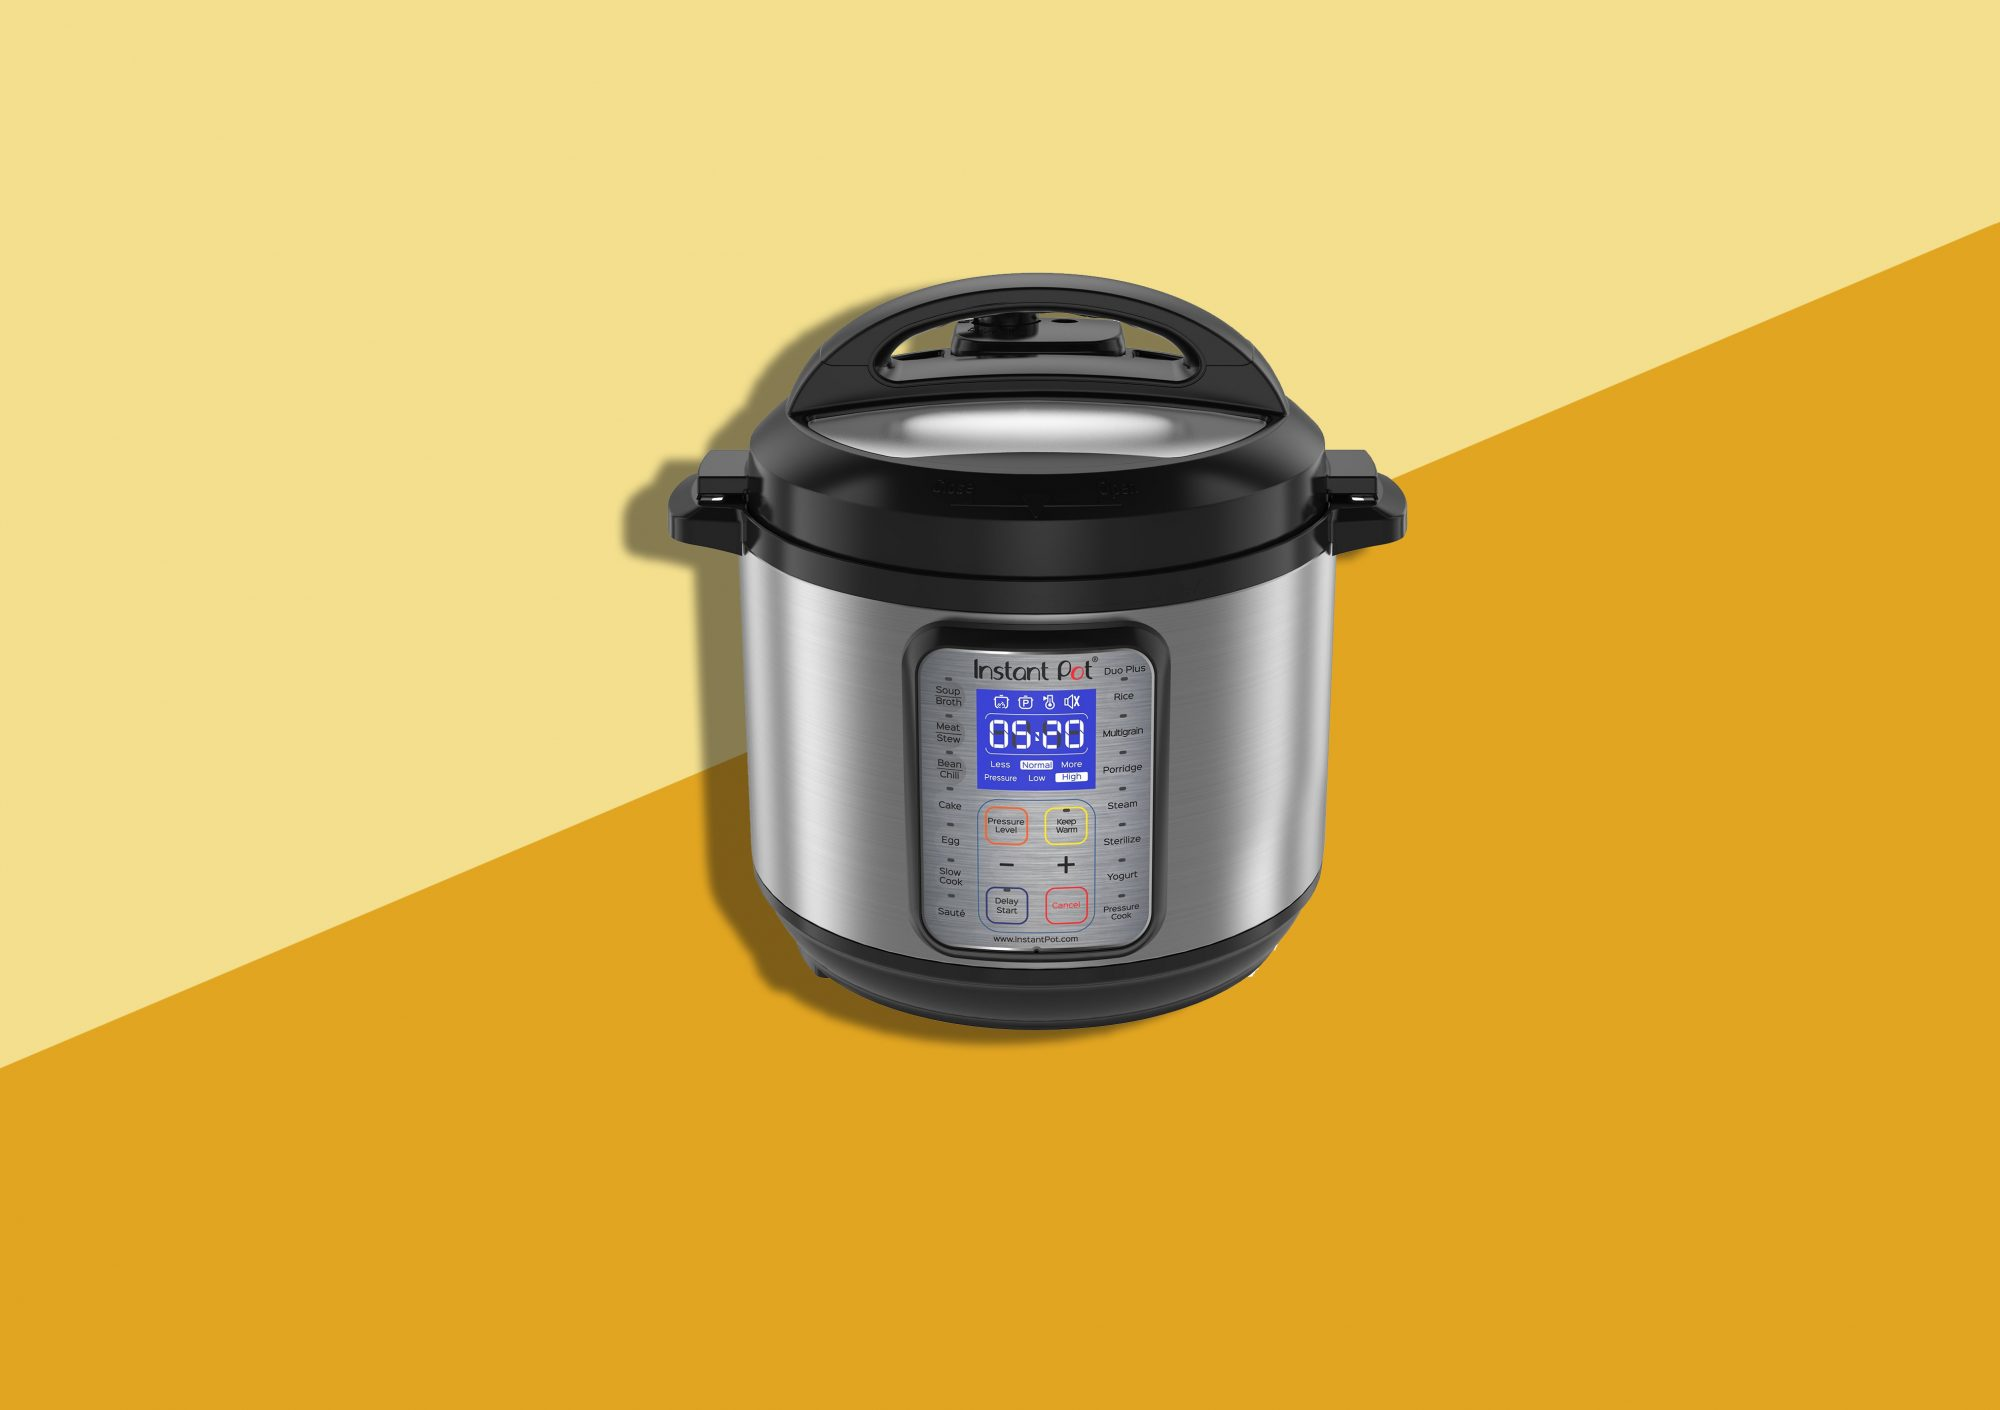 5 Clever Hacks for Your Instant Pot That You Haven't Tried Yet